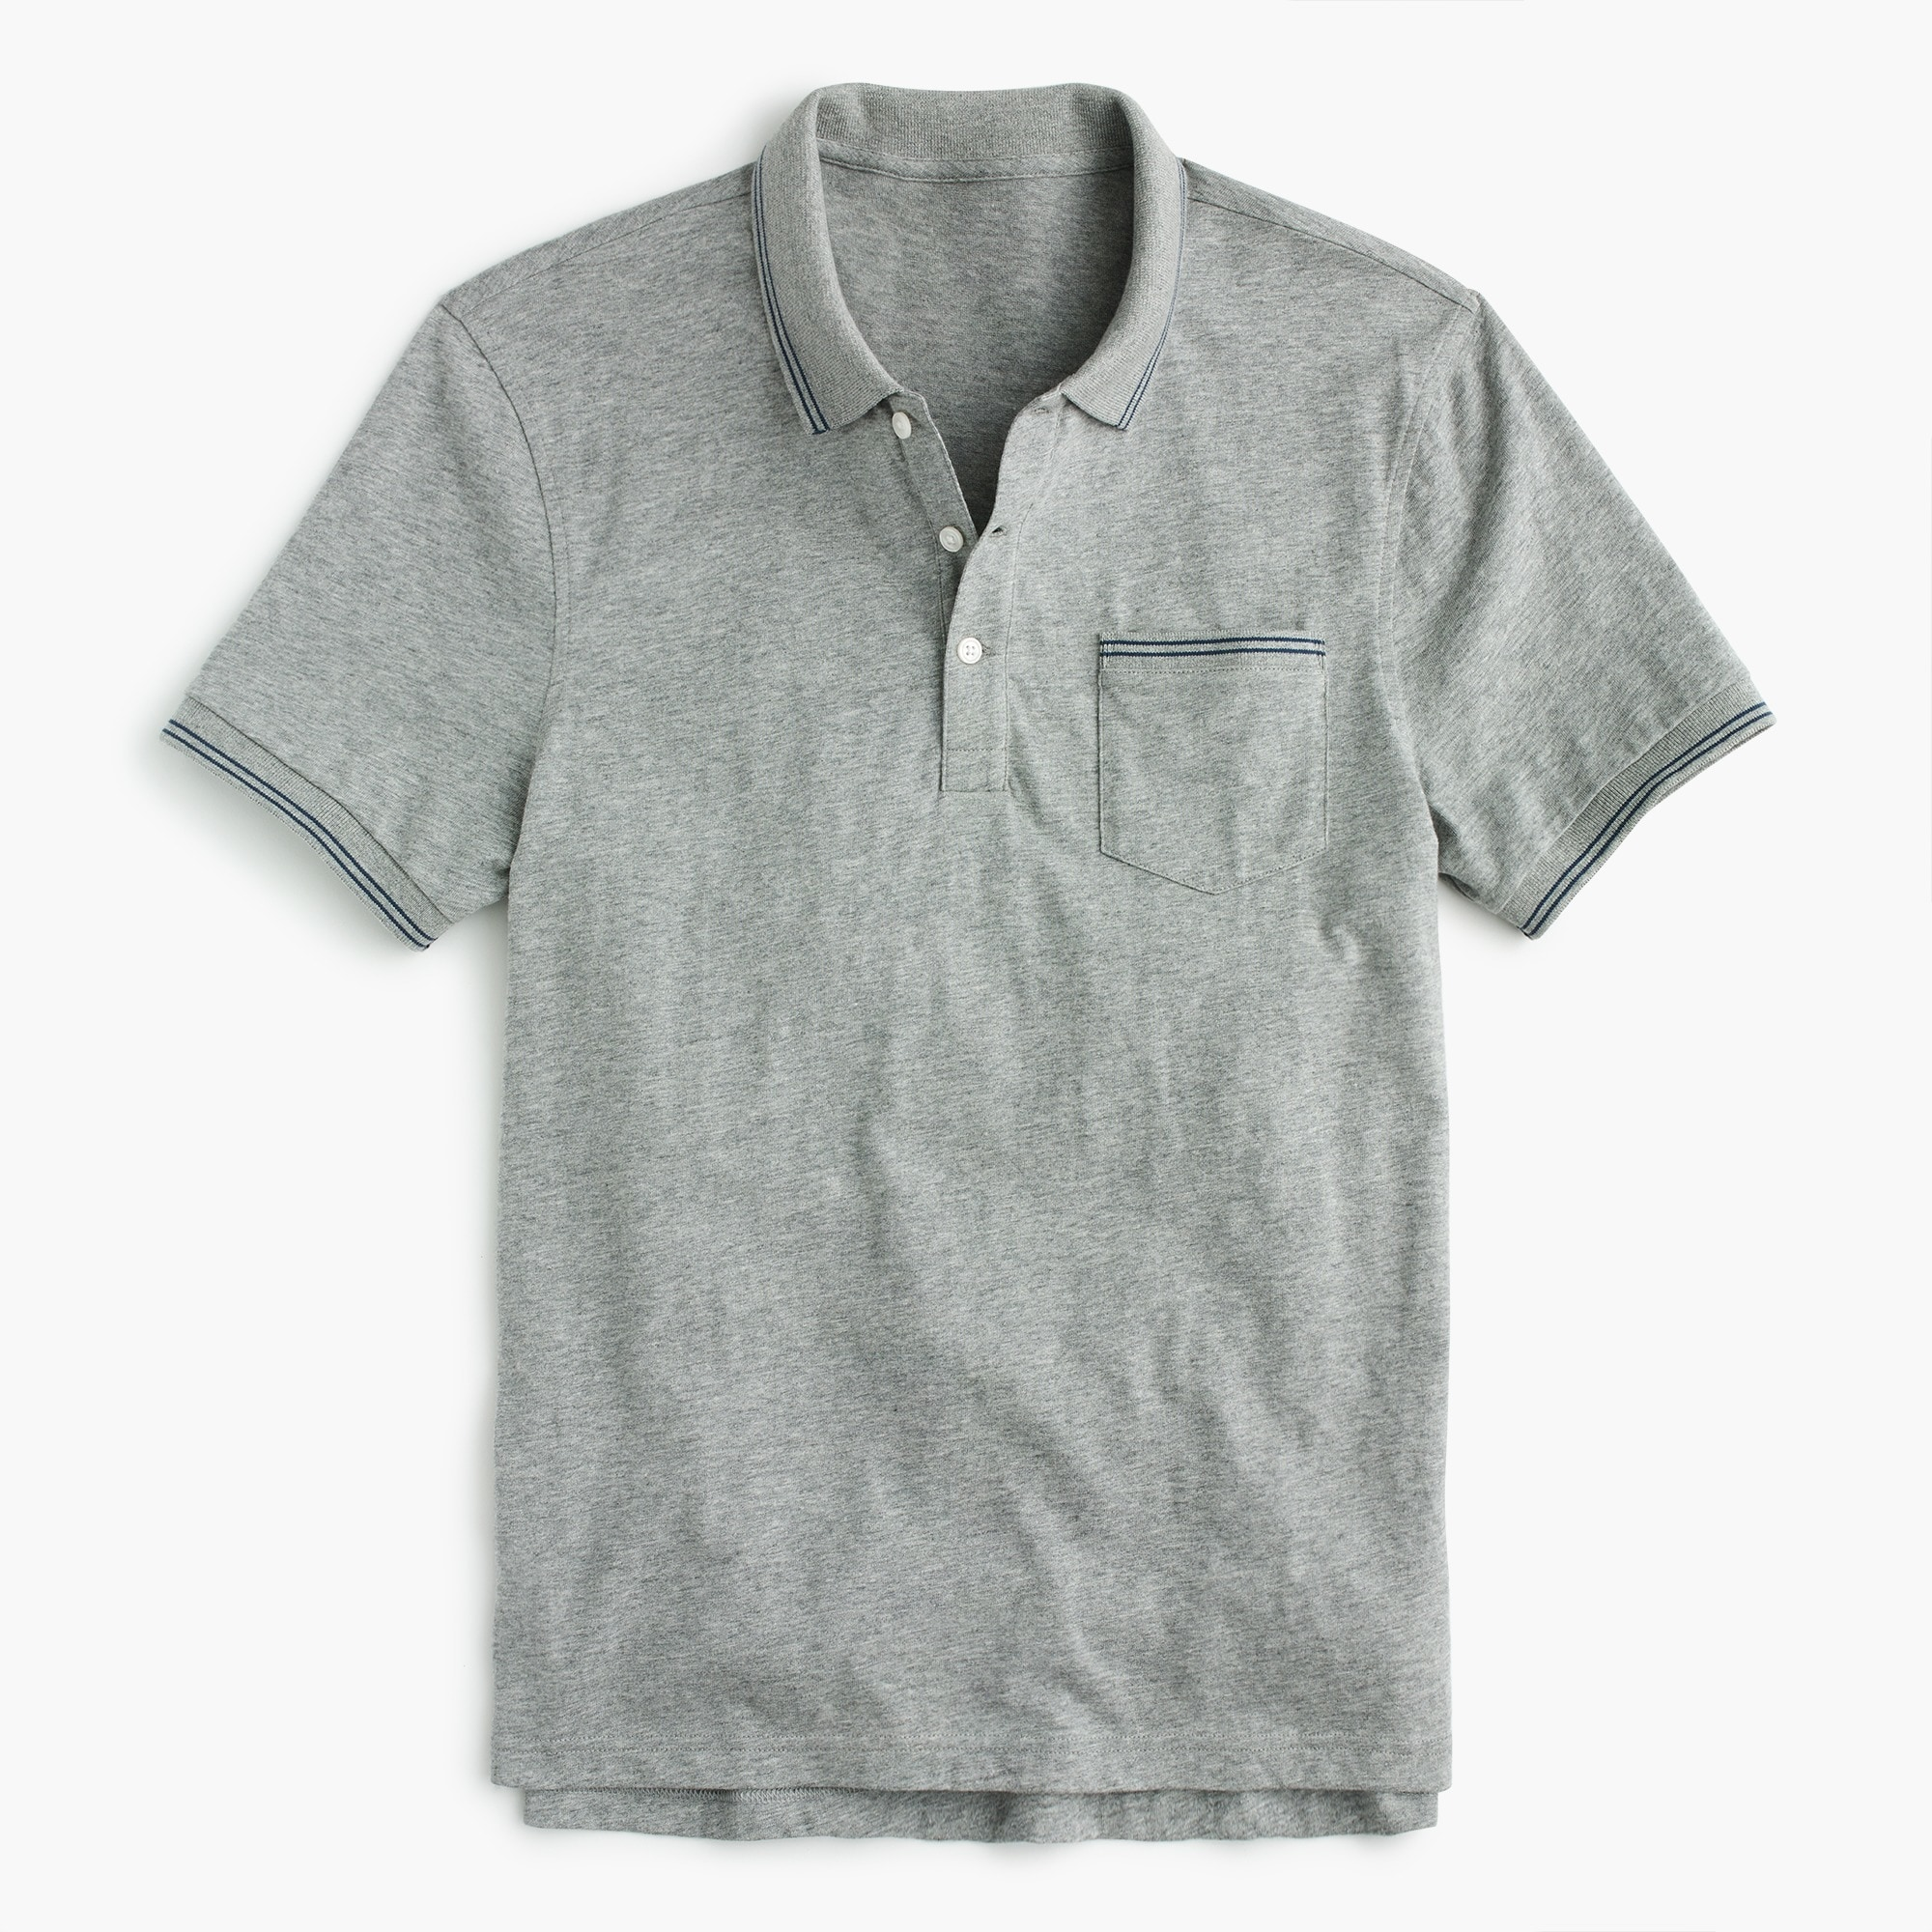 Tall slub cotton jersey polo in double-tipped grey